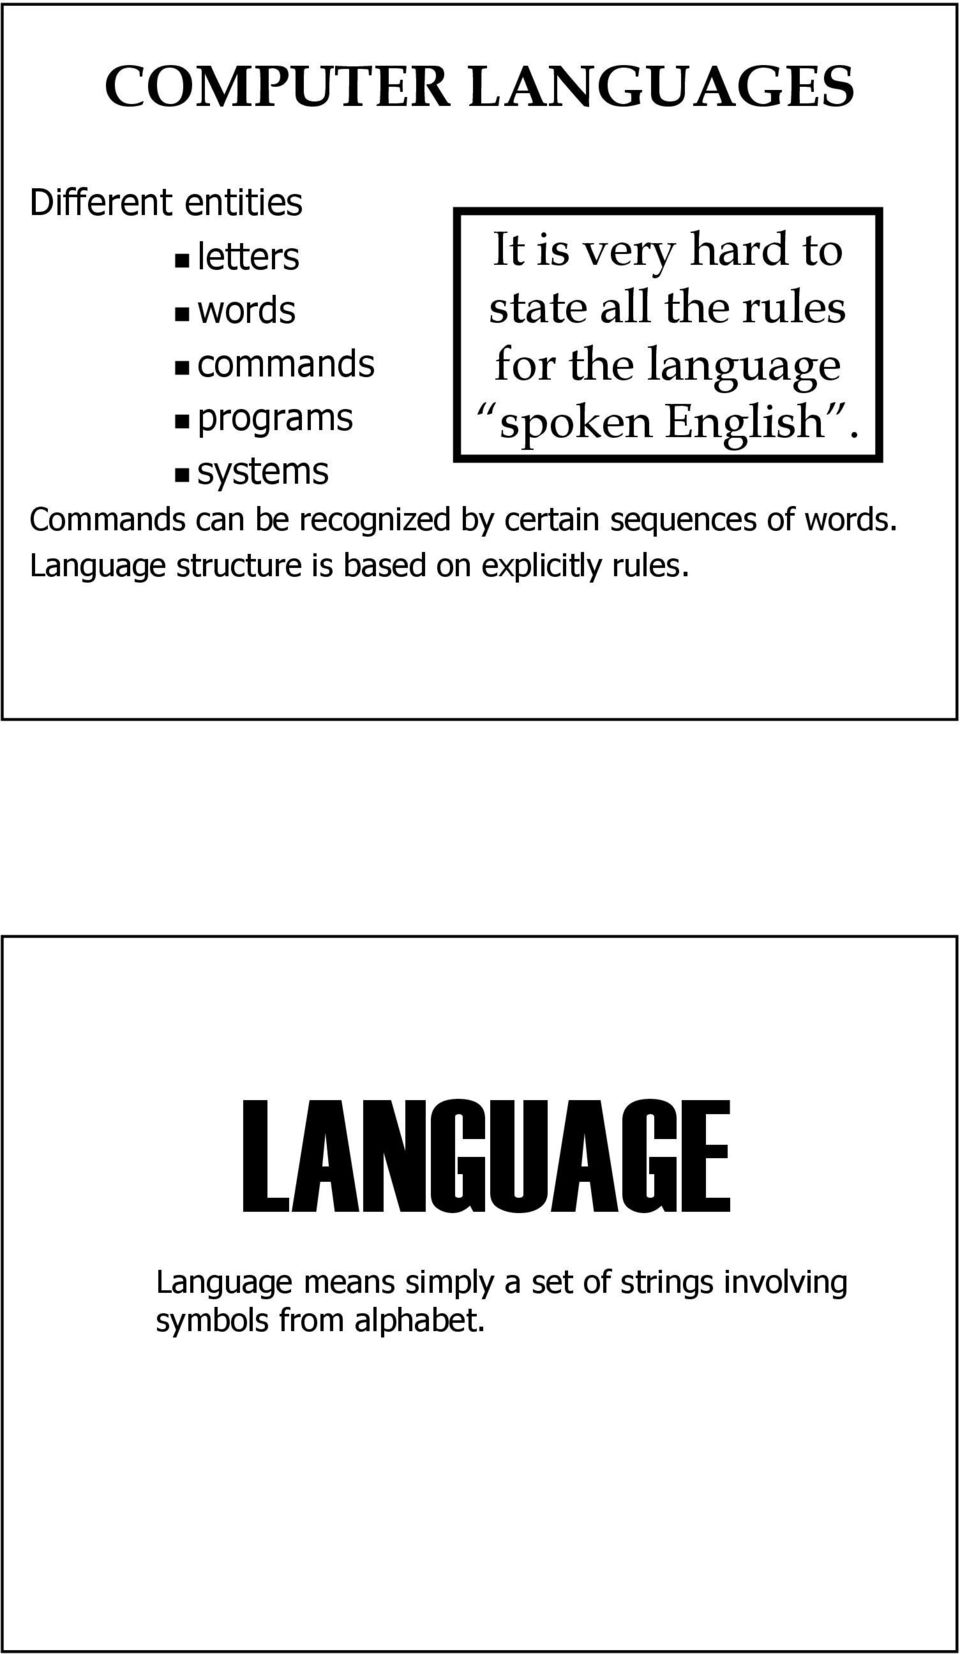 systems Commands can be recognized by certain sequences of words.